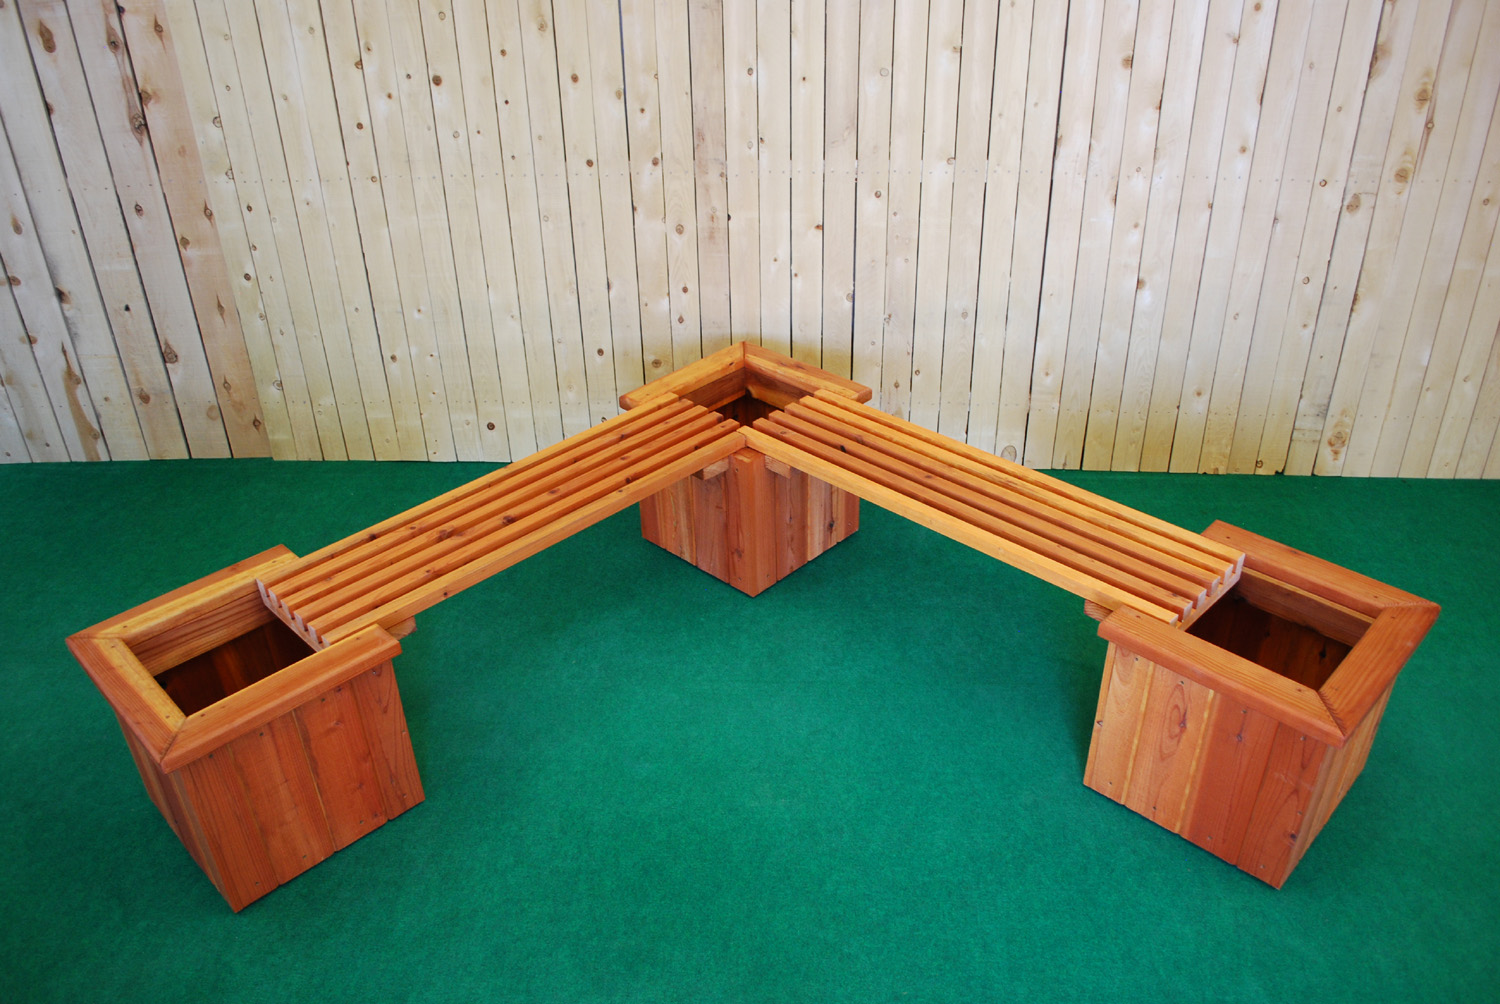 redwood l shape planter and bench